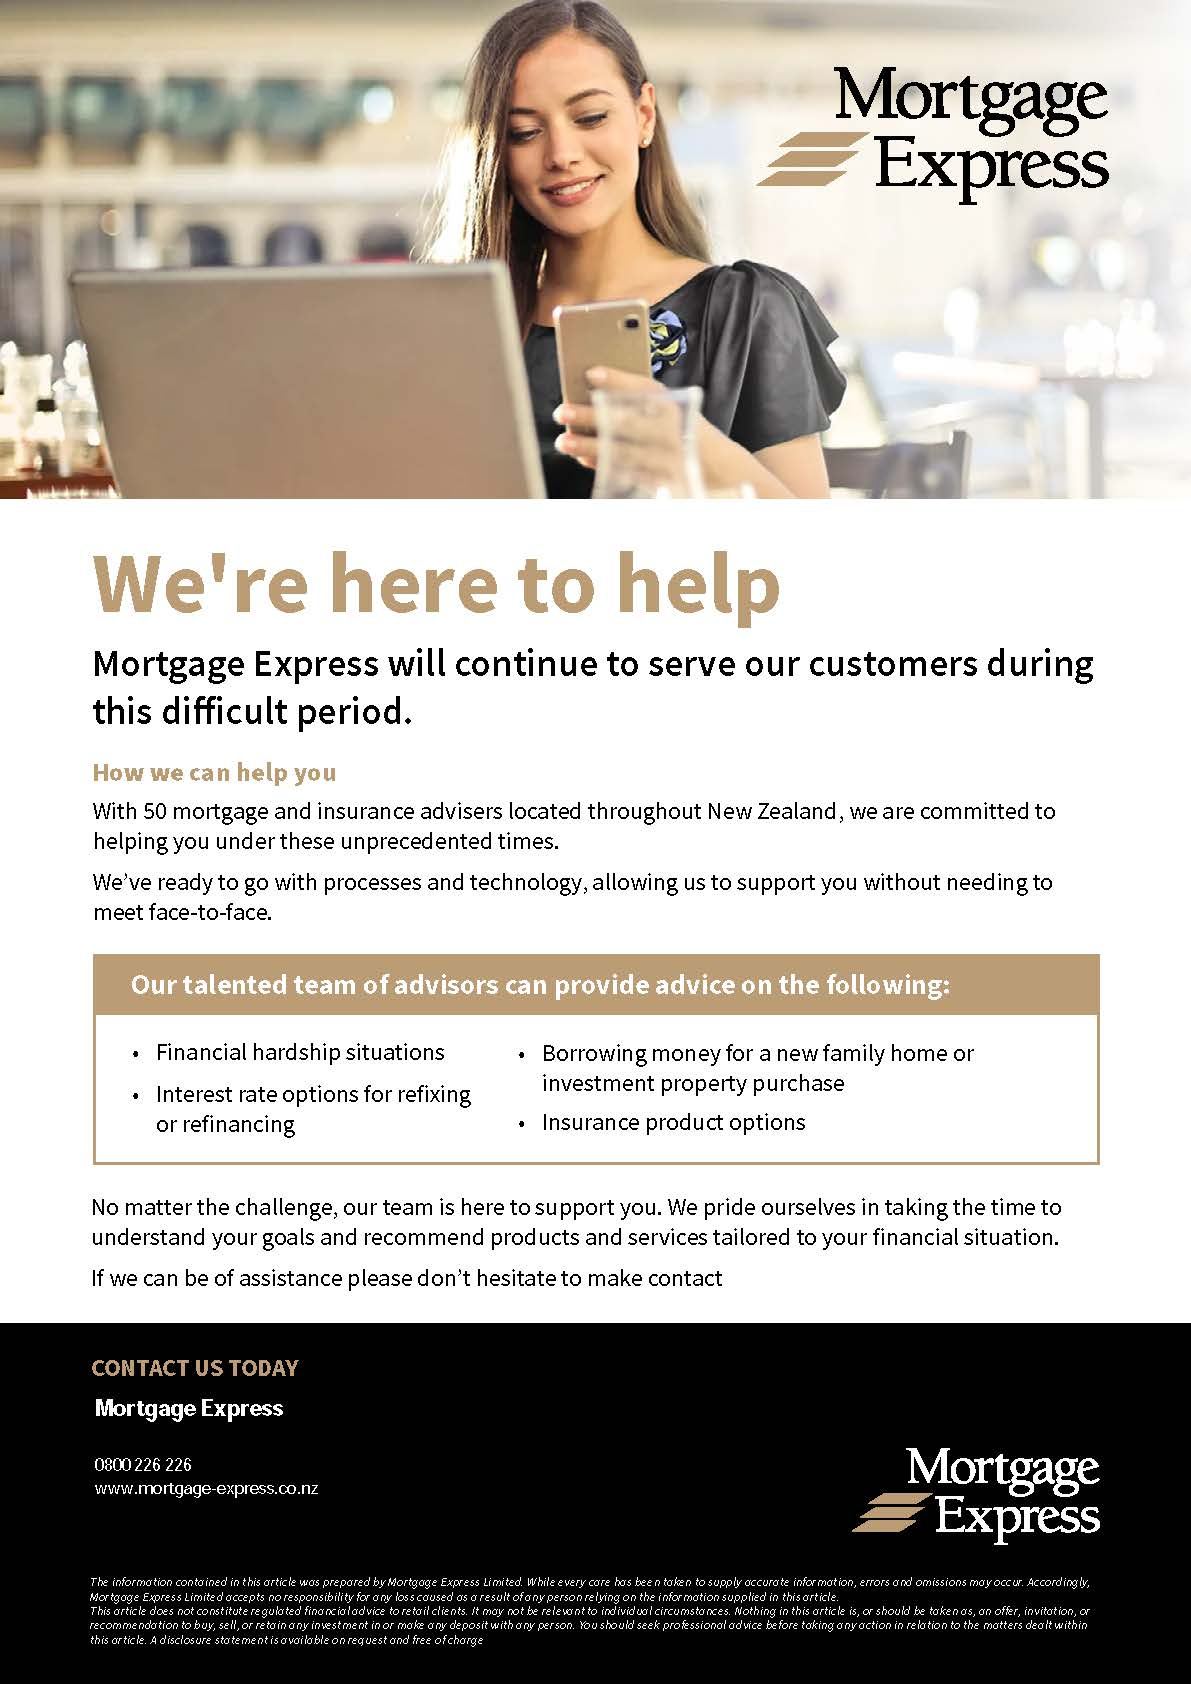 200053 Mortgage Express - COVID-19 Comms